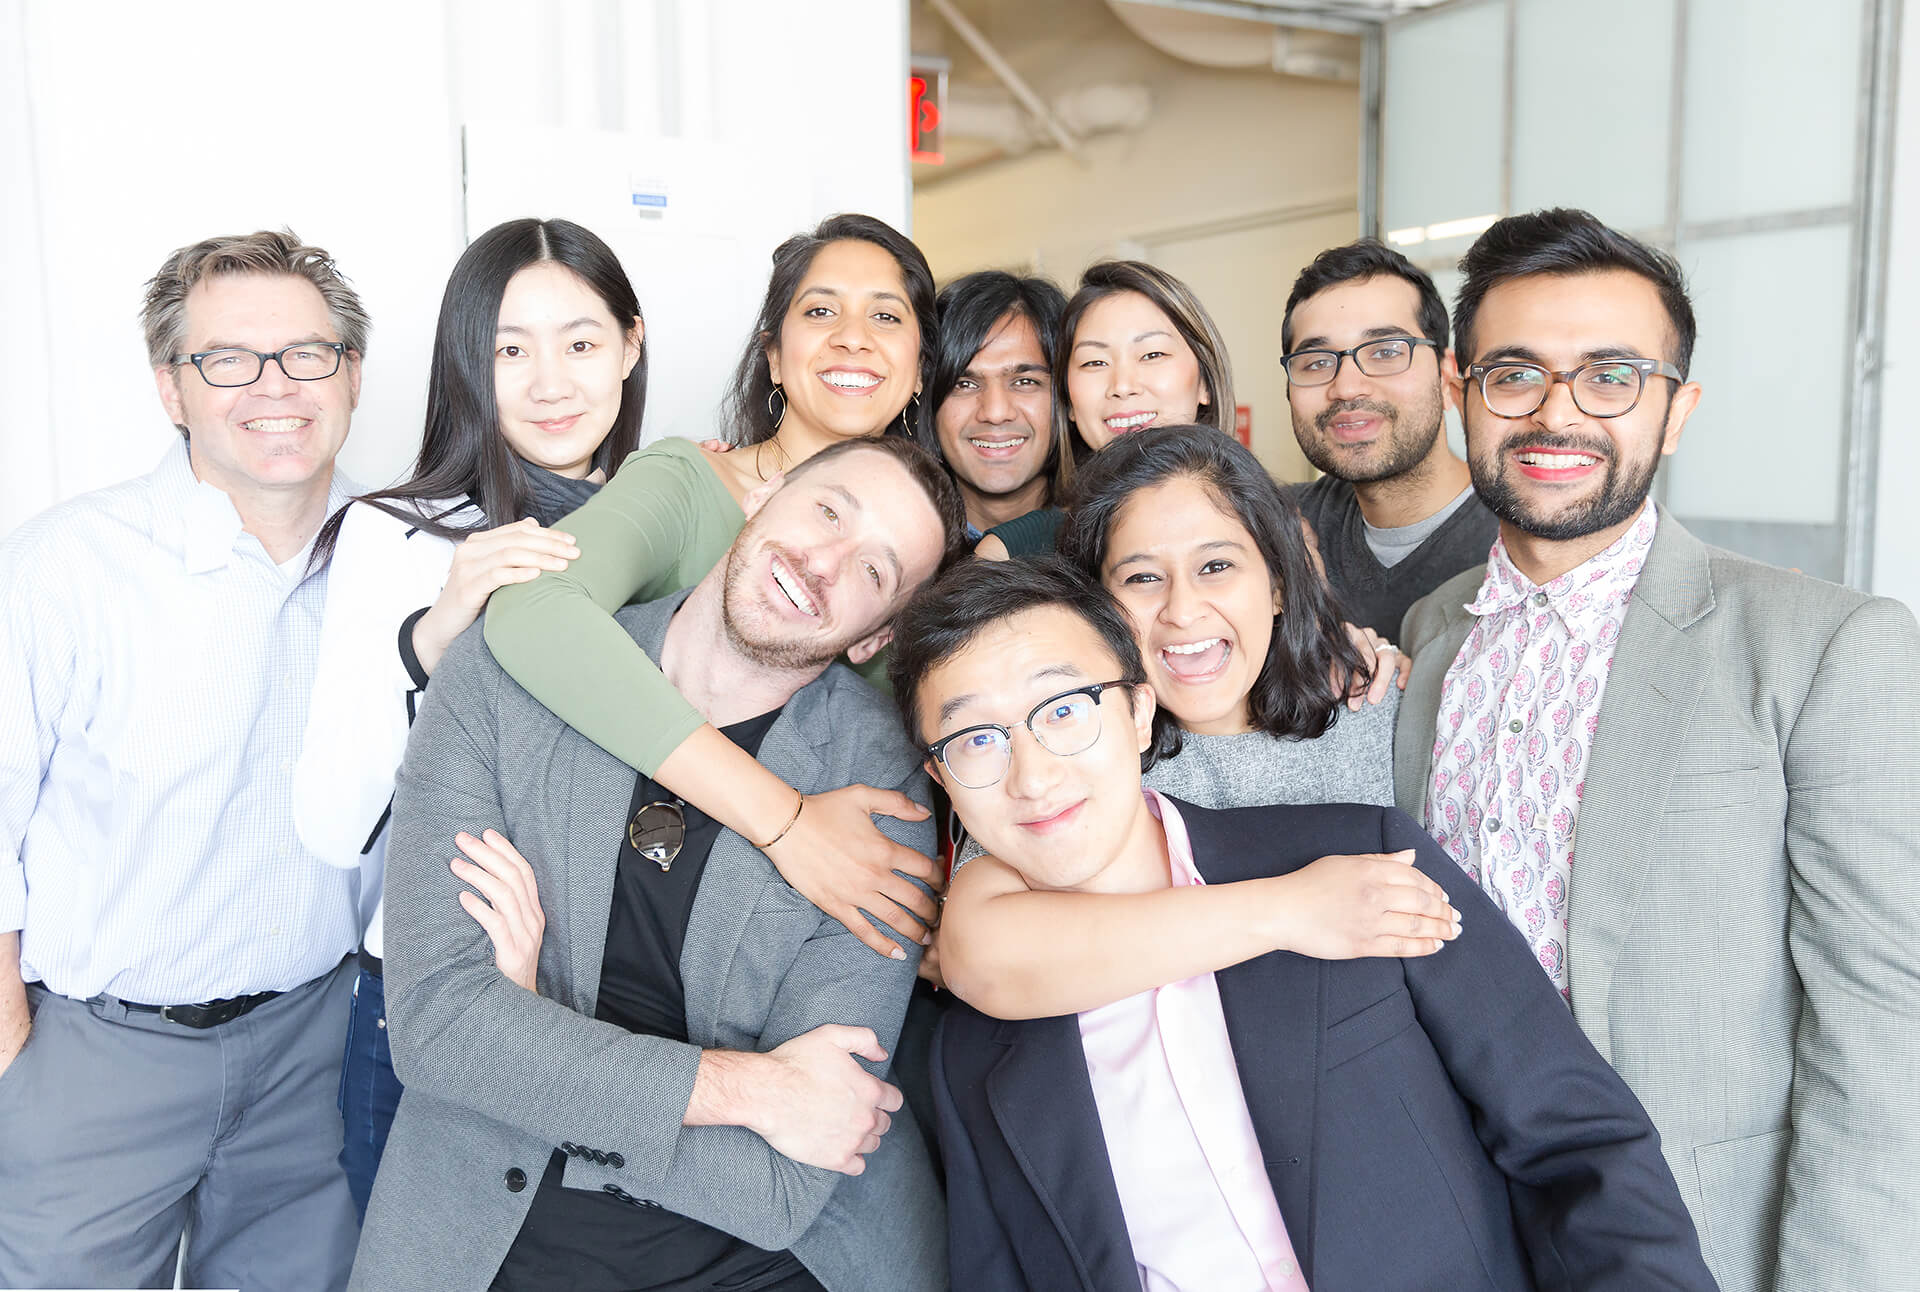 Group of IDM students embracing each other